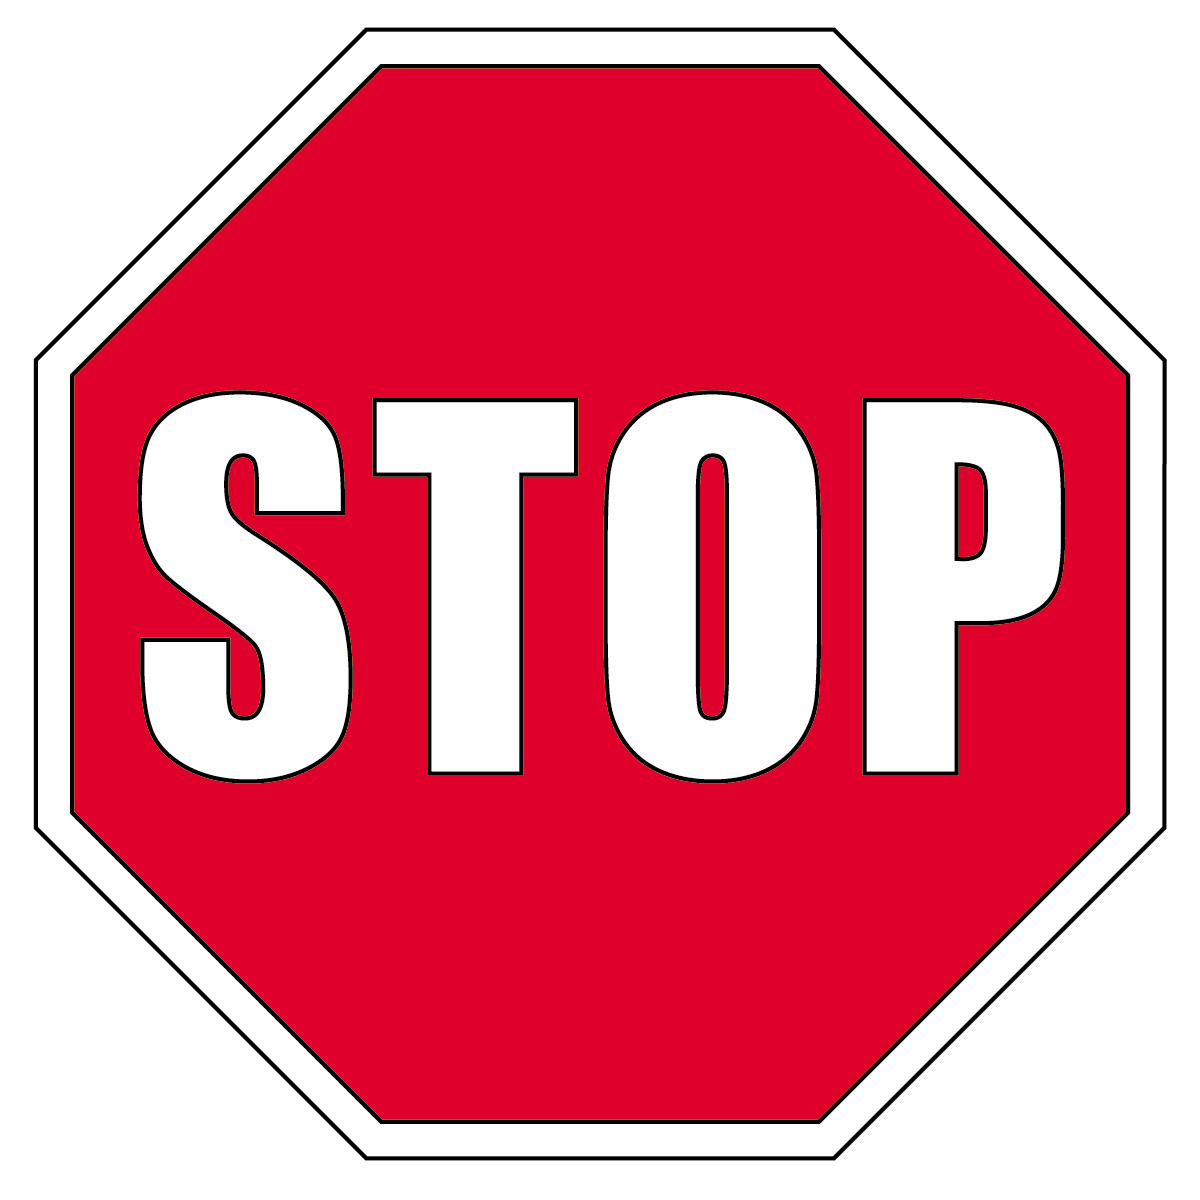 stop sign clipart-stop sign clipart-1